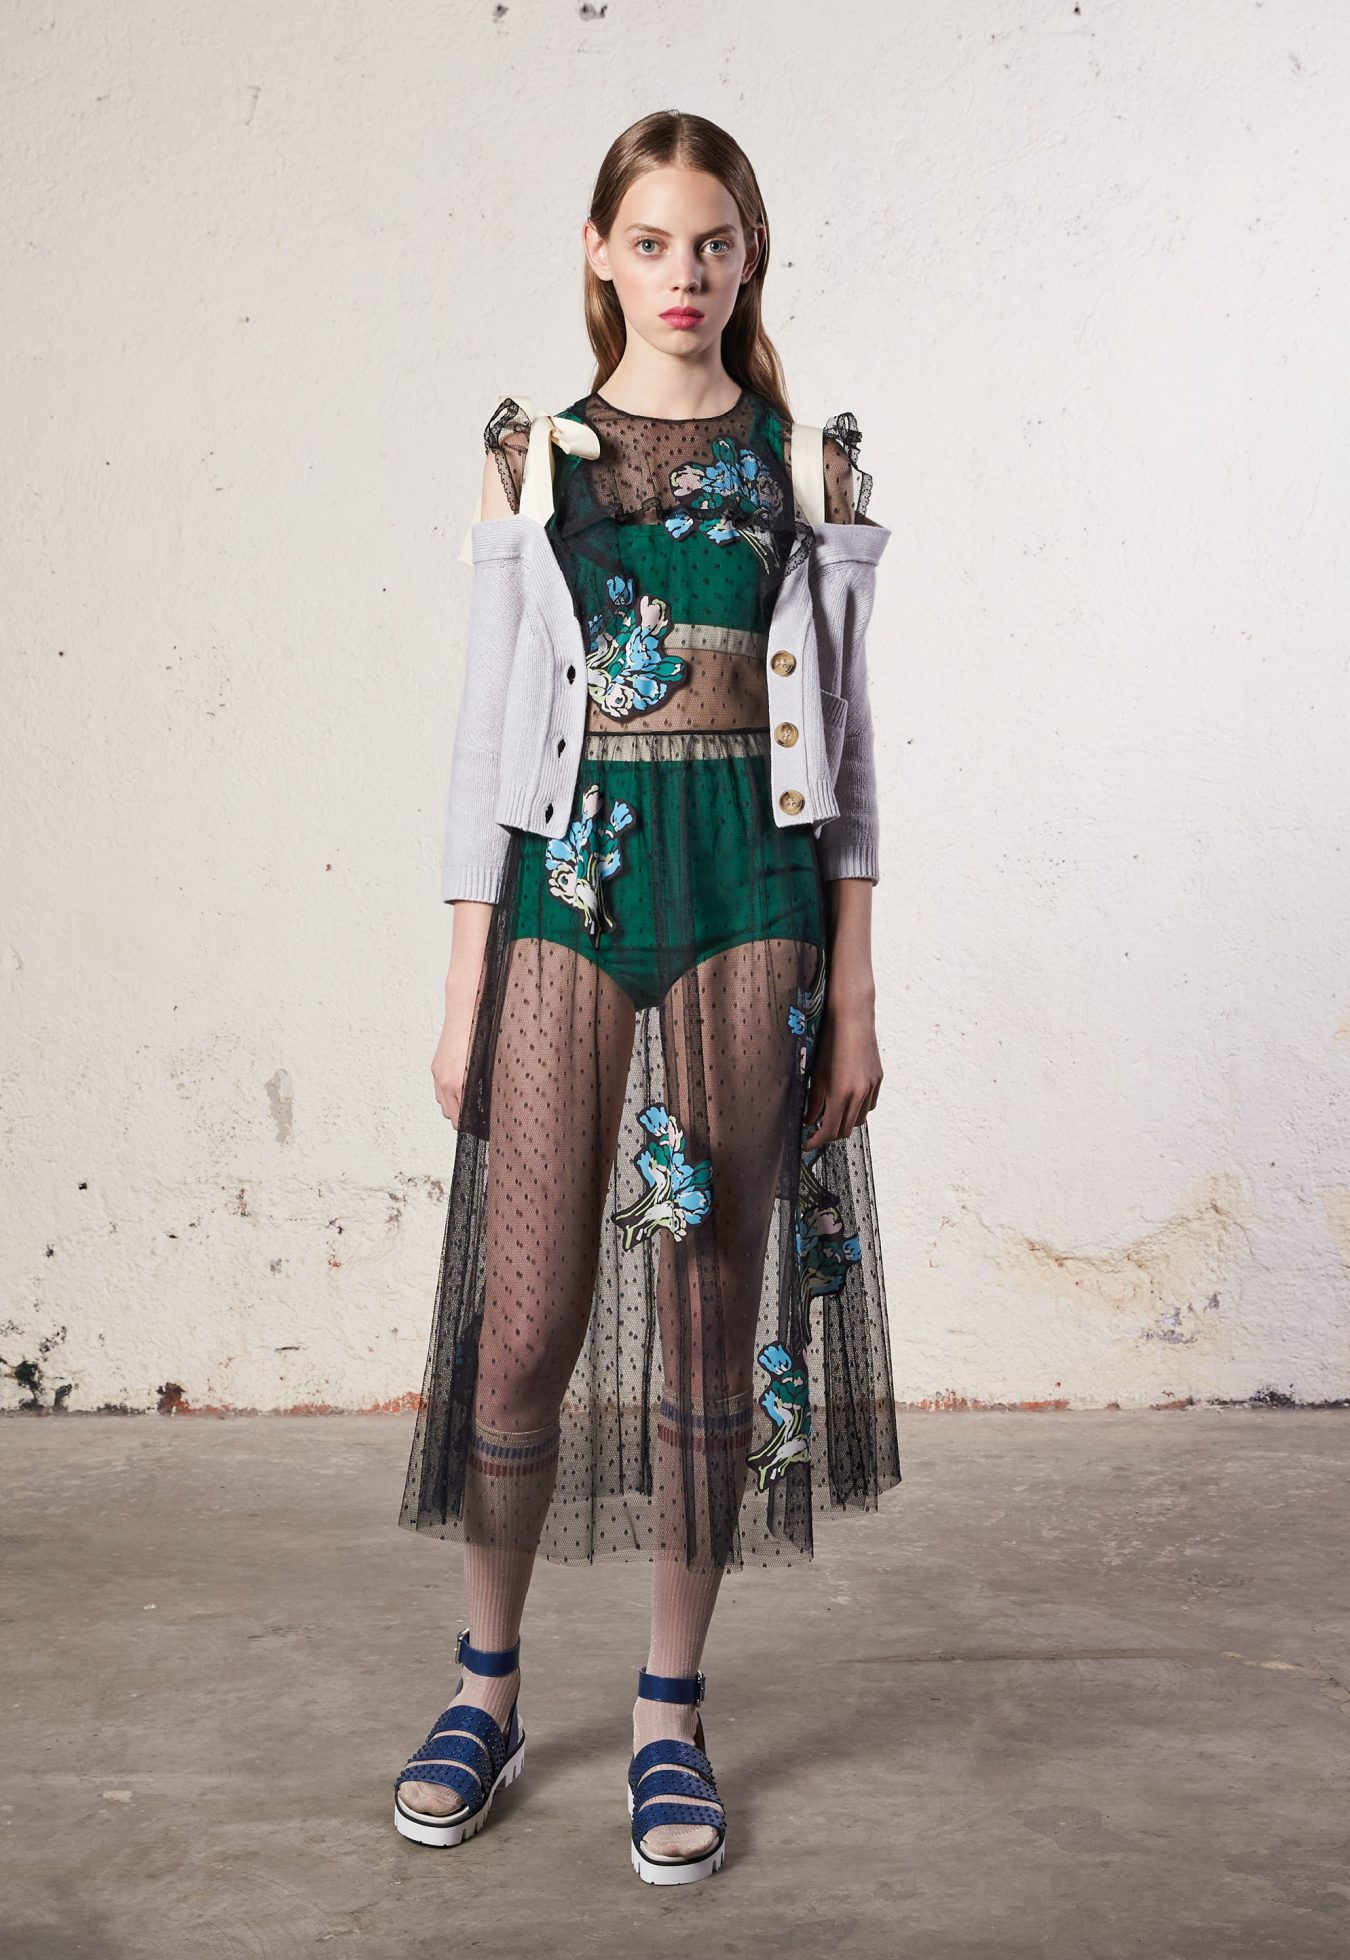 Red Valentino Resort 2018 Lookbook The Impression Fashion News